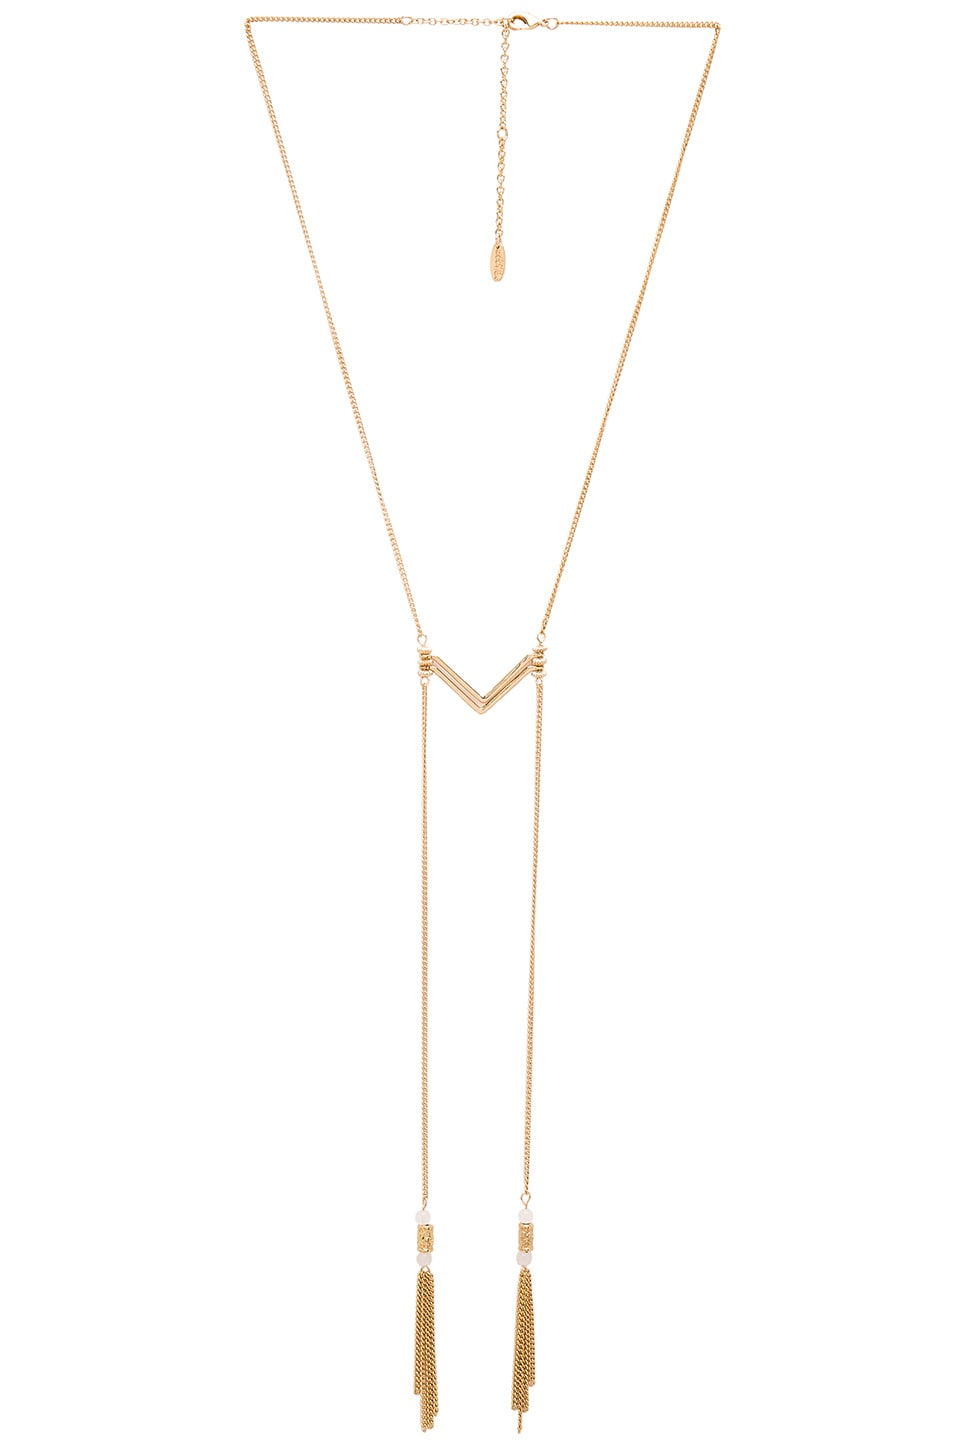 Ettika Tassel Necklace in Gold